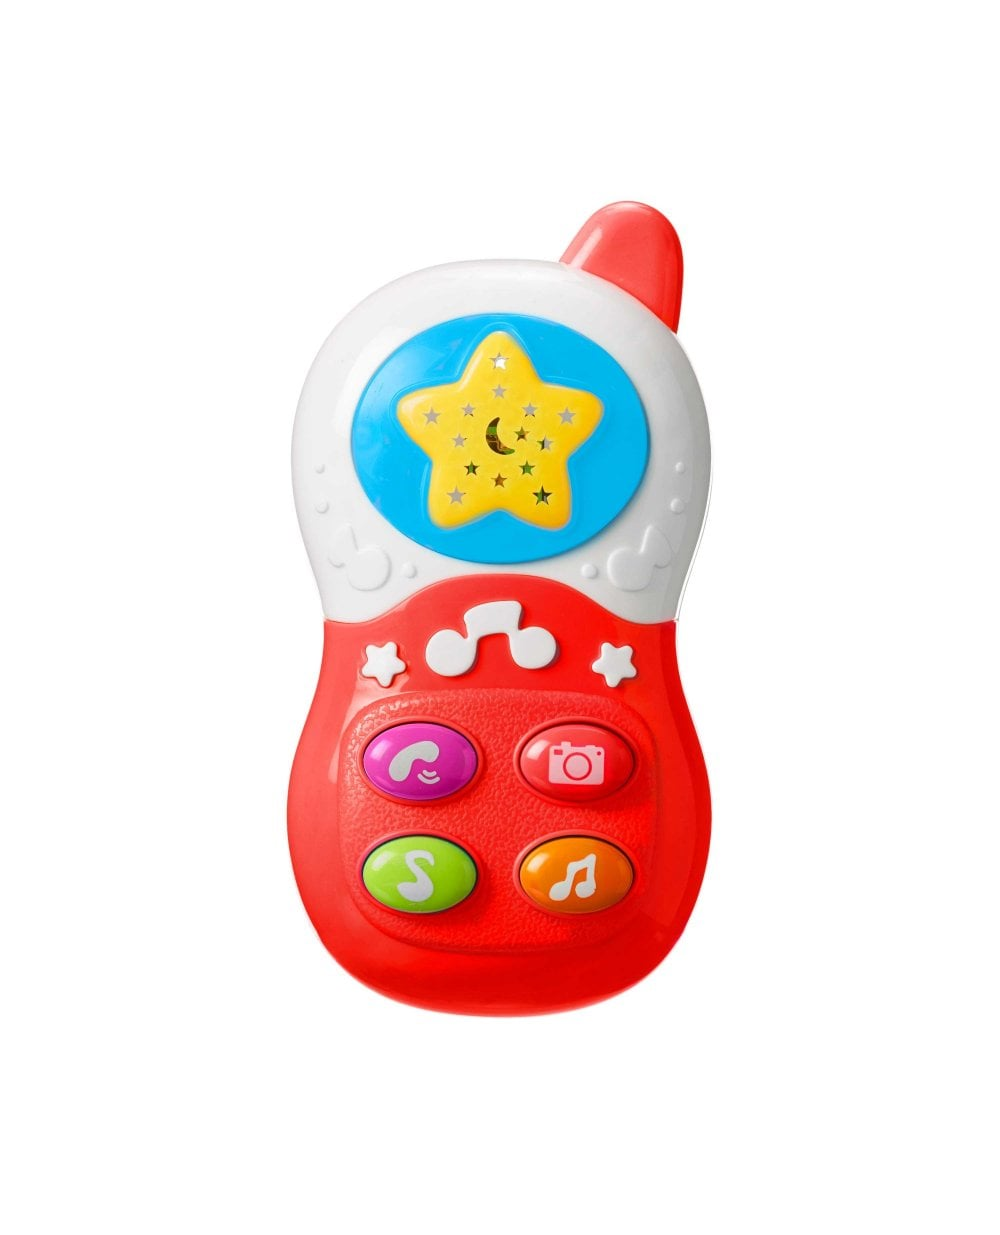 Nuby Baby Toy Mobile Phone Colour: Red